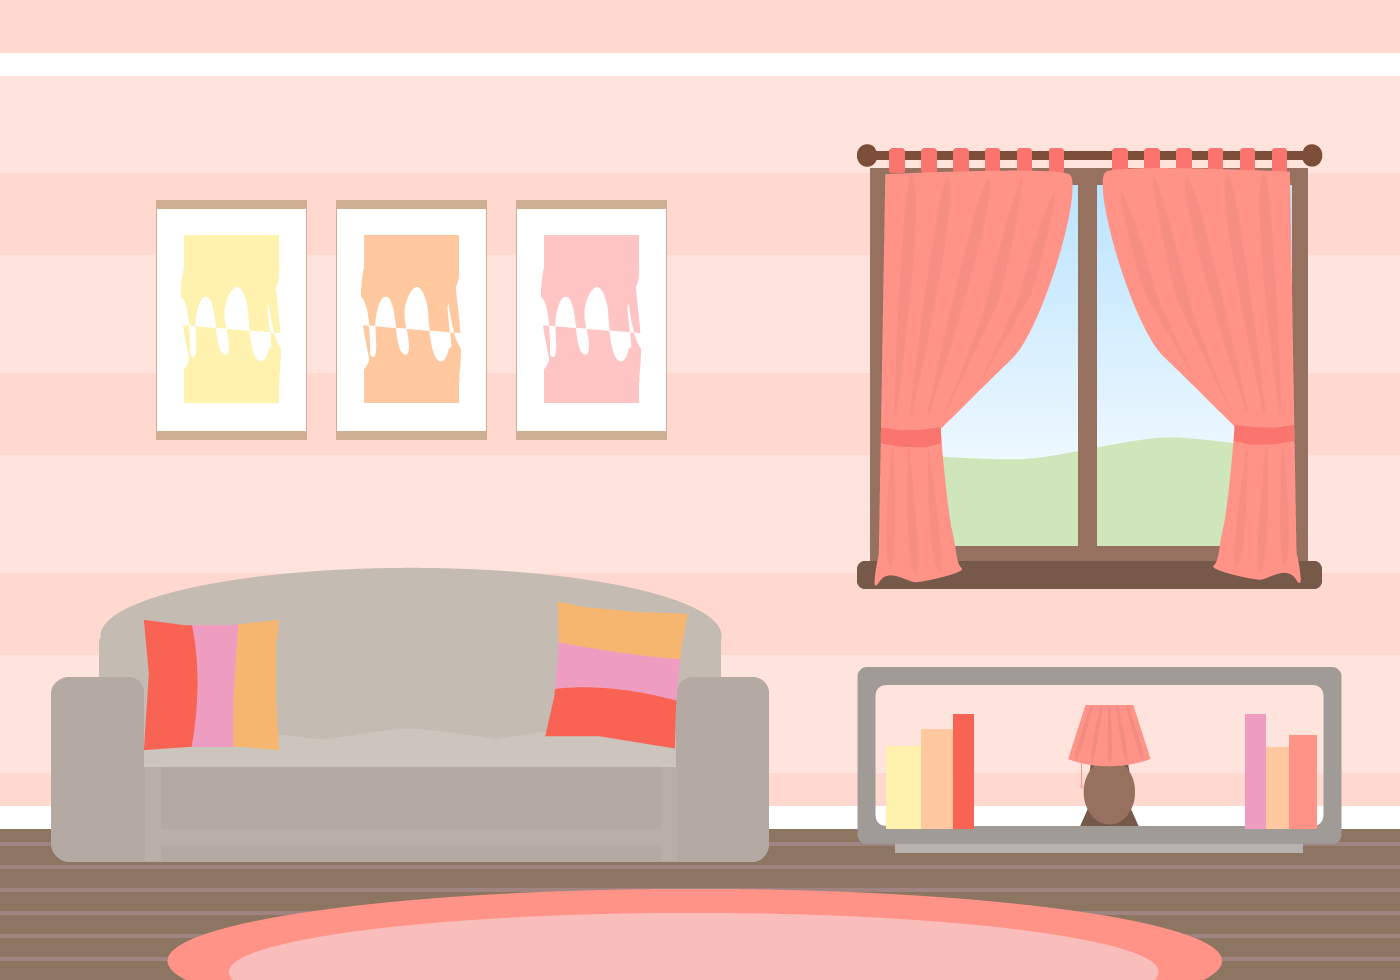 Sofa Set Images Free Download Free Living Room Vector Download Free Vector Art Stock Graphics